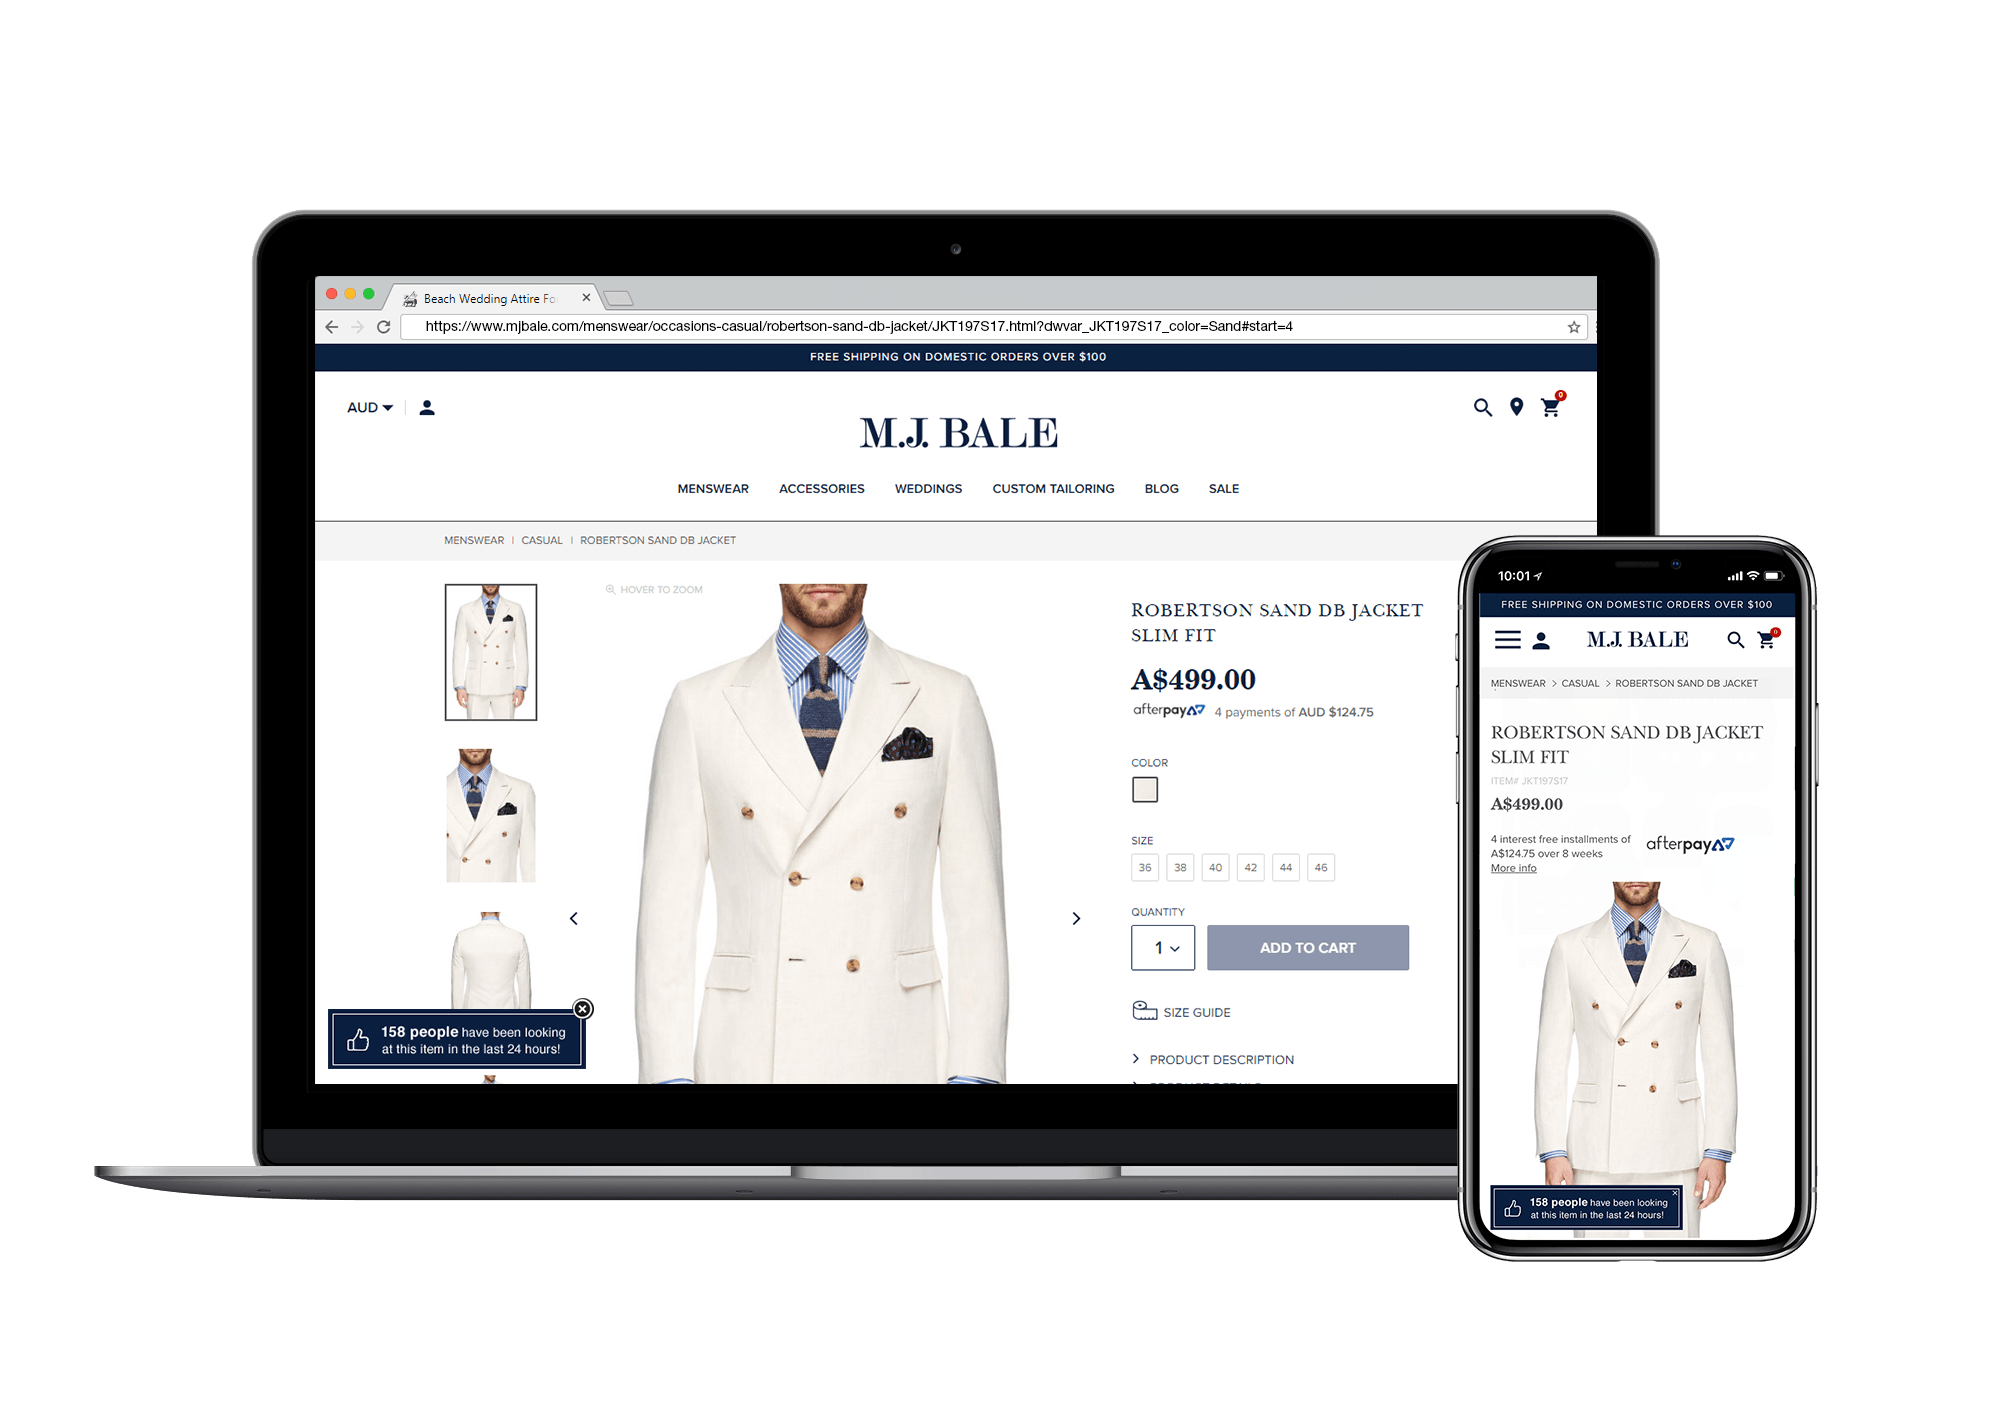 Product page social proof